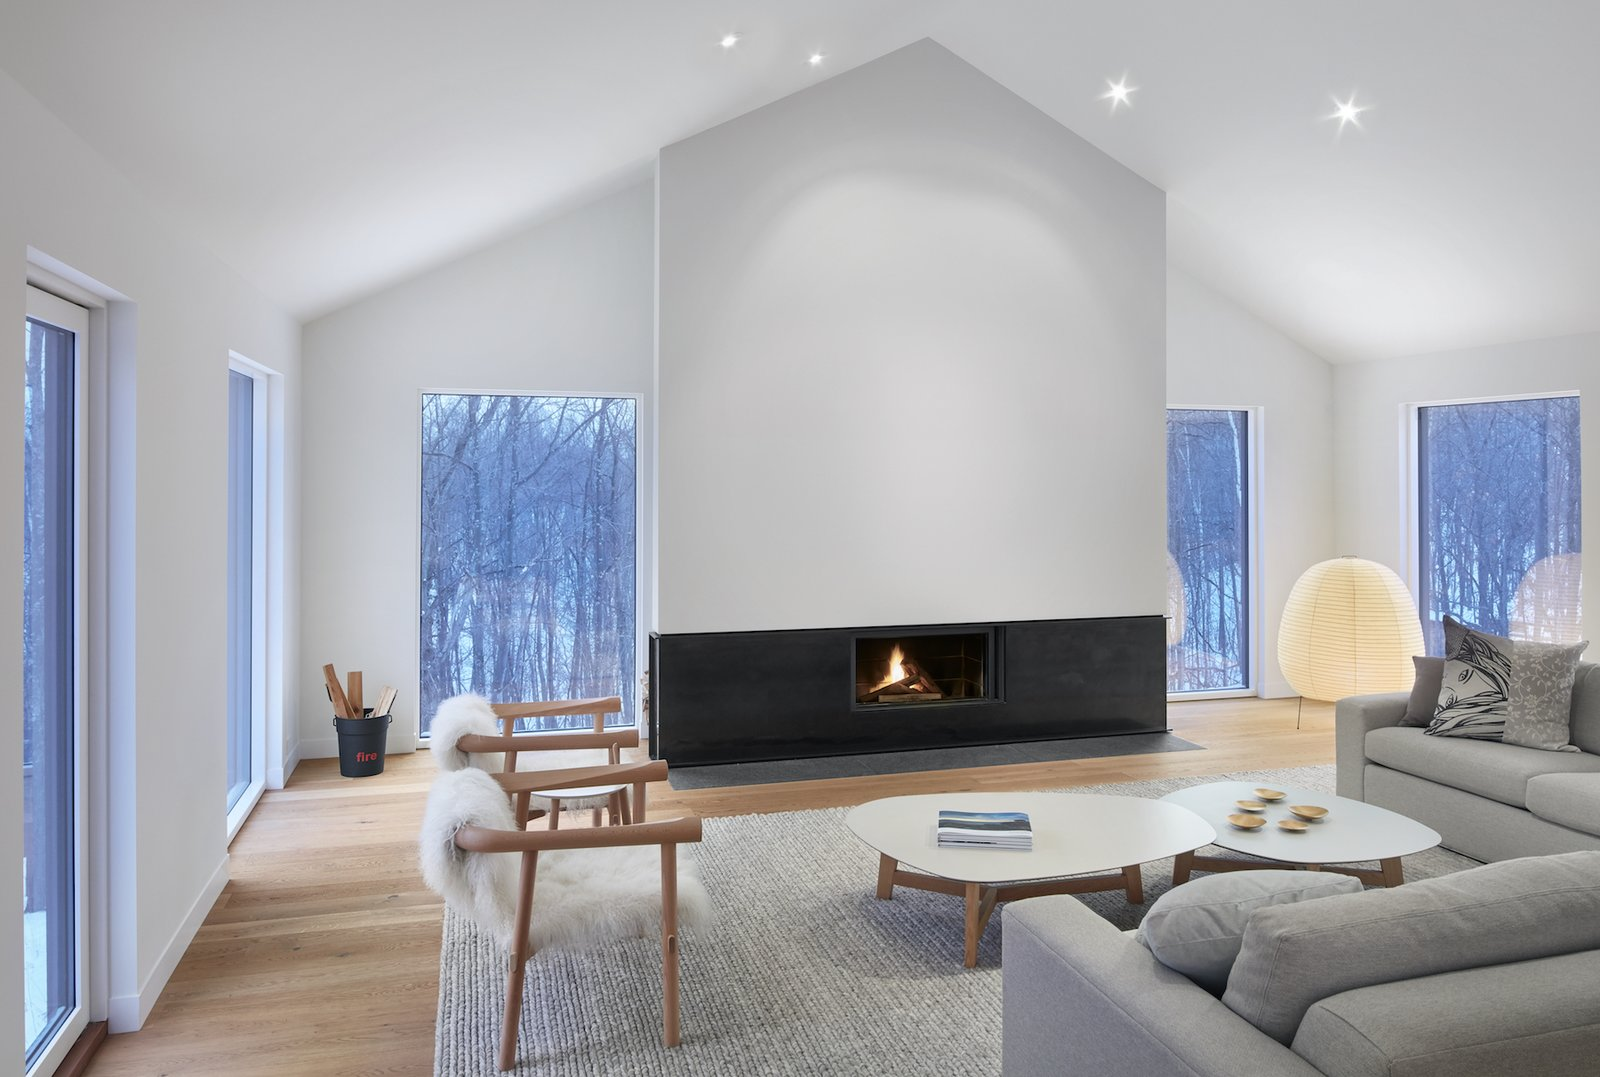 Living Room, Standard Layout Fireplace, Light Hardwood Floor, Chair, and Recessed Lighting  Alta Chalet